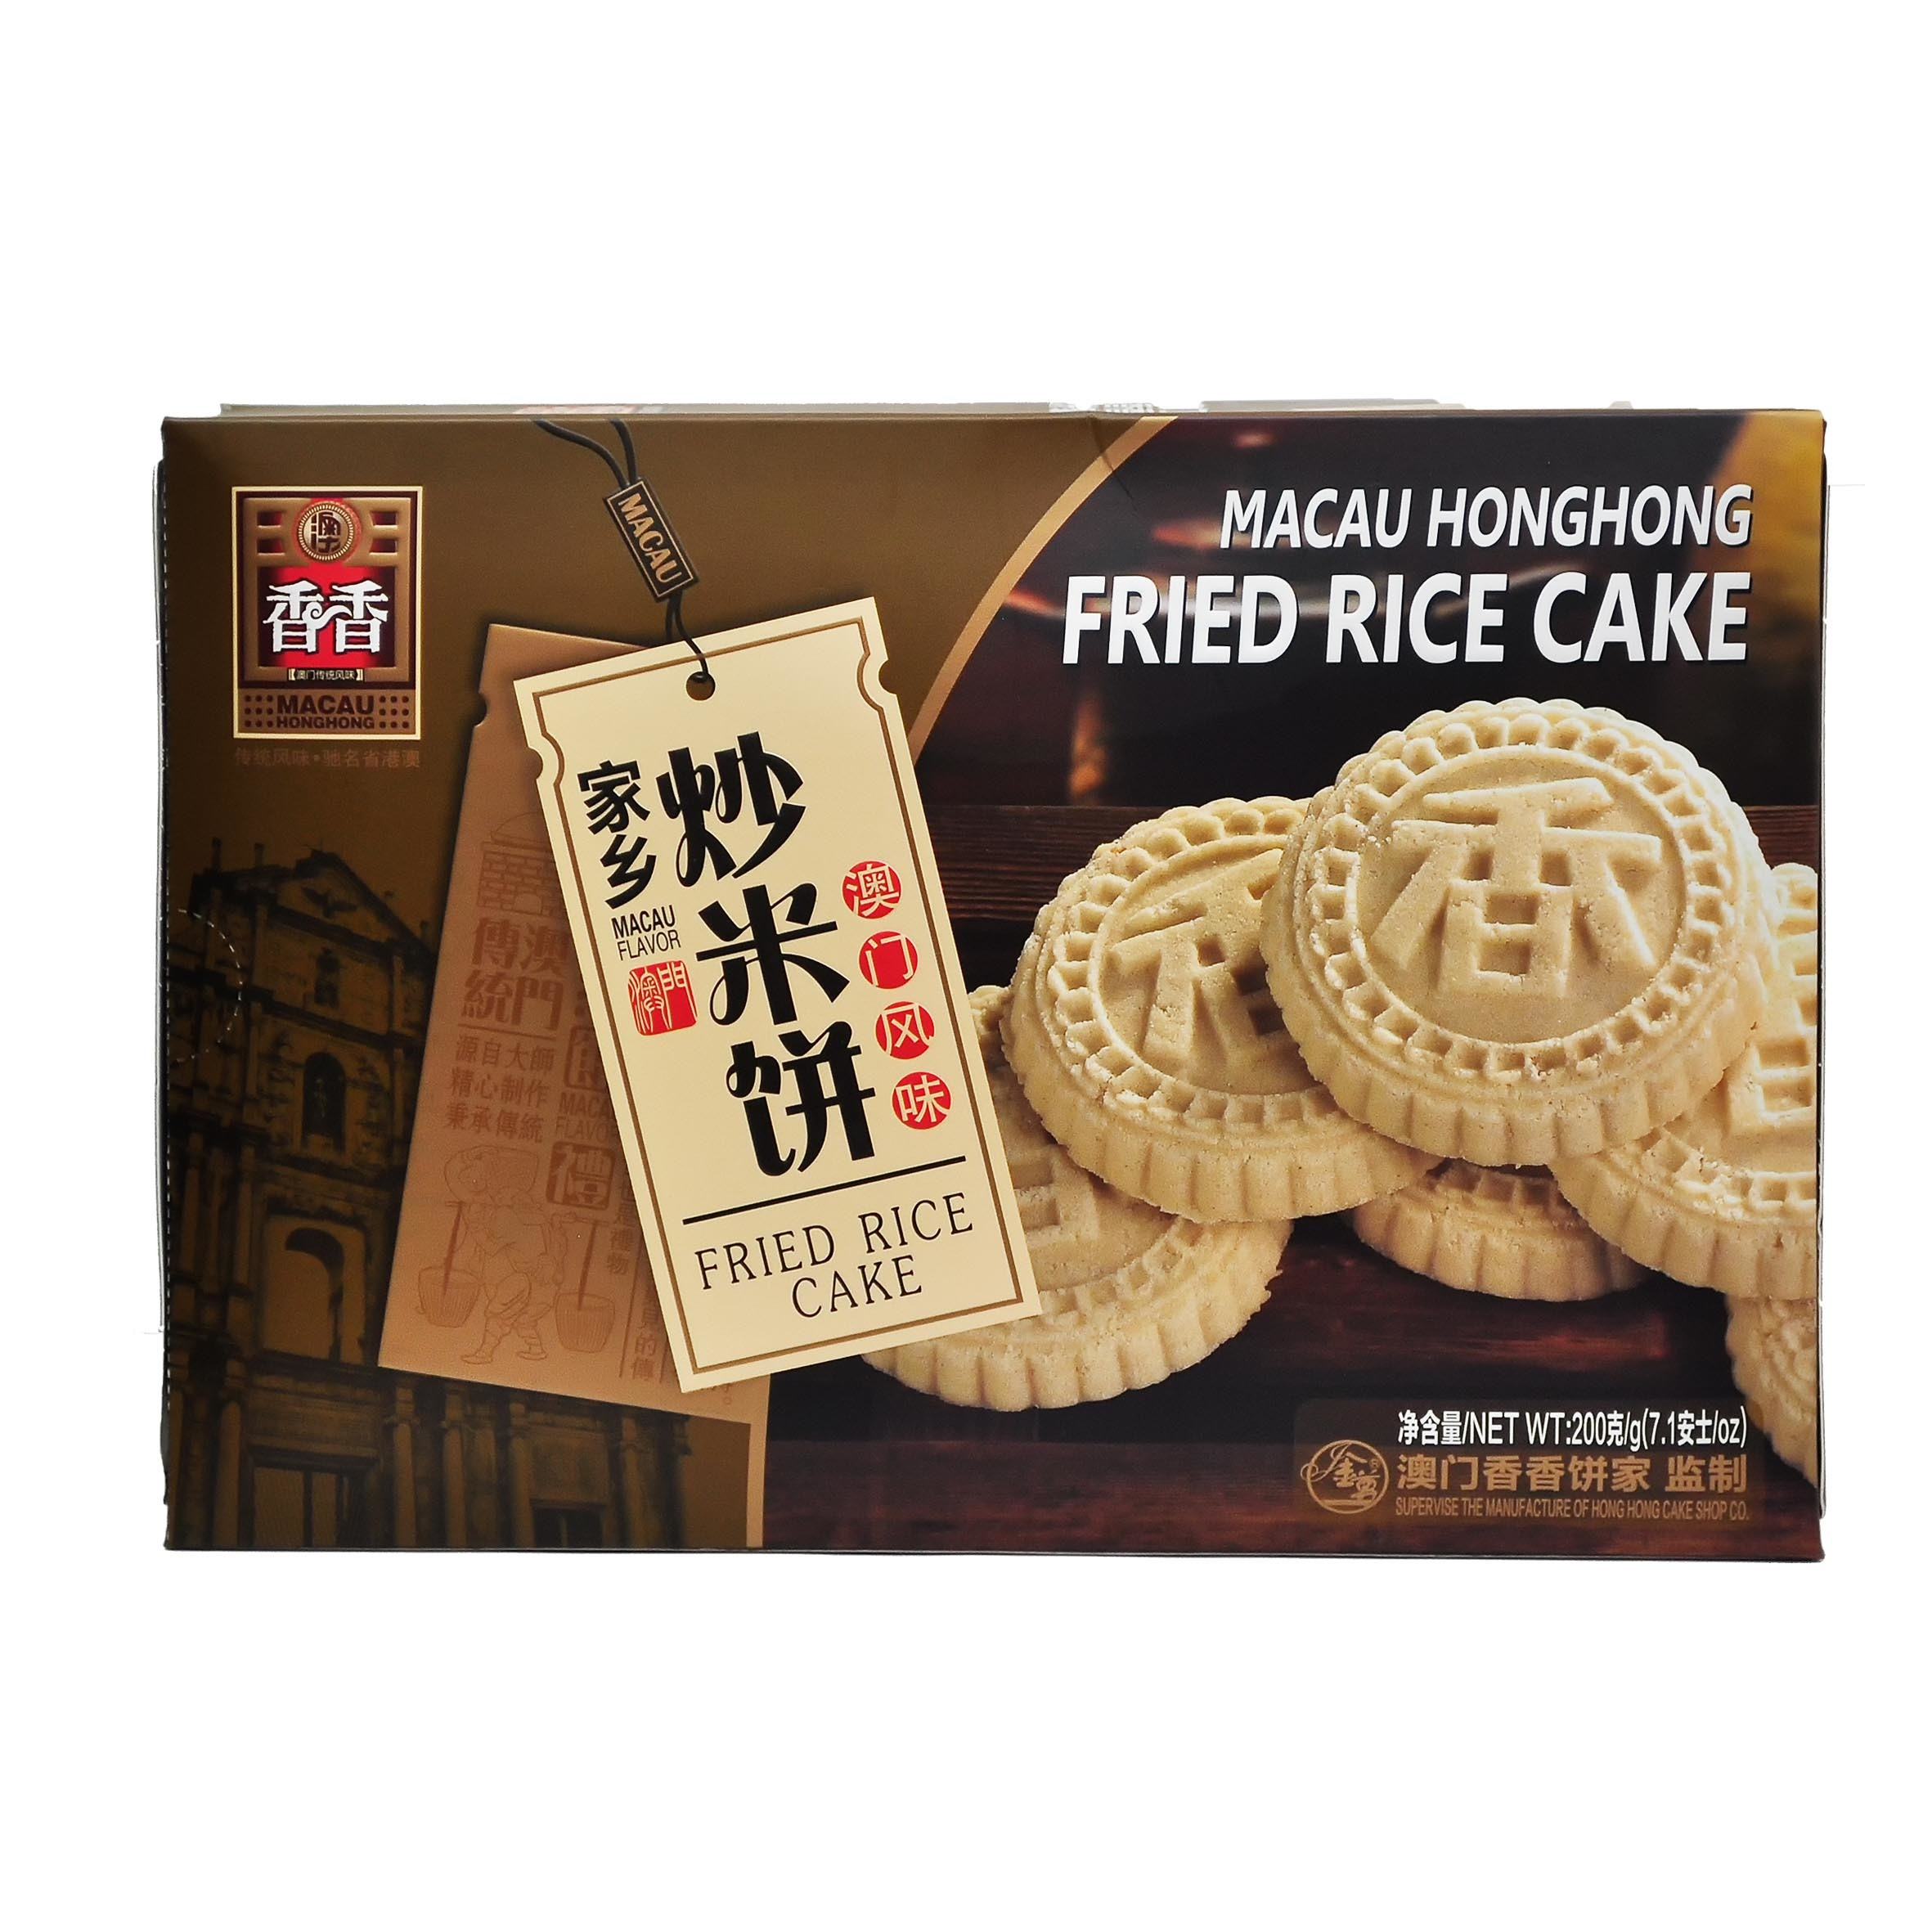 Macau Hong Kong Fried RIce Cake Front.jpg